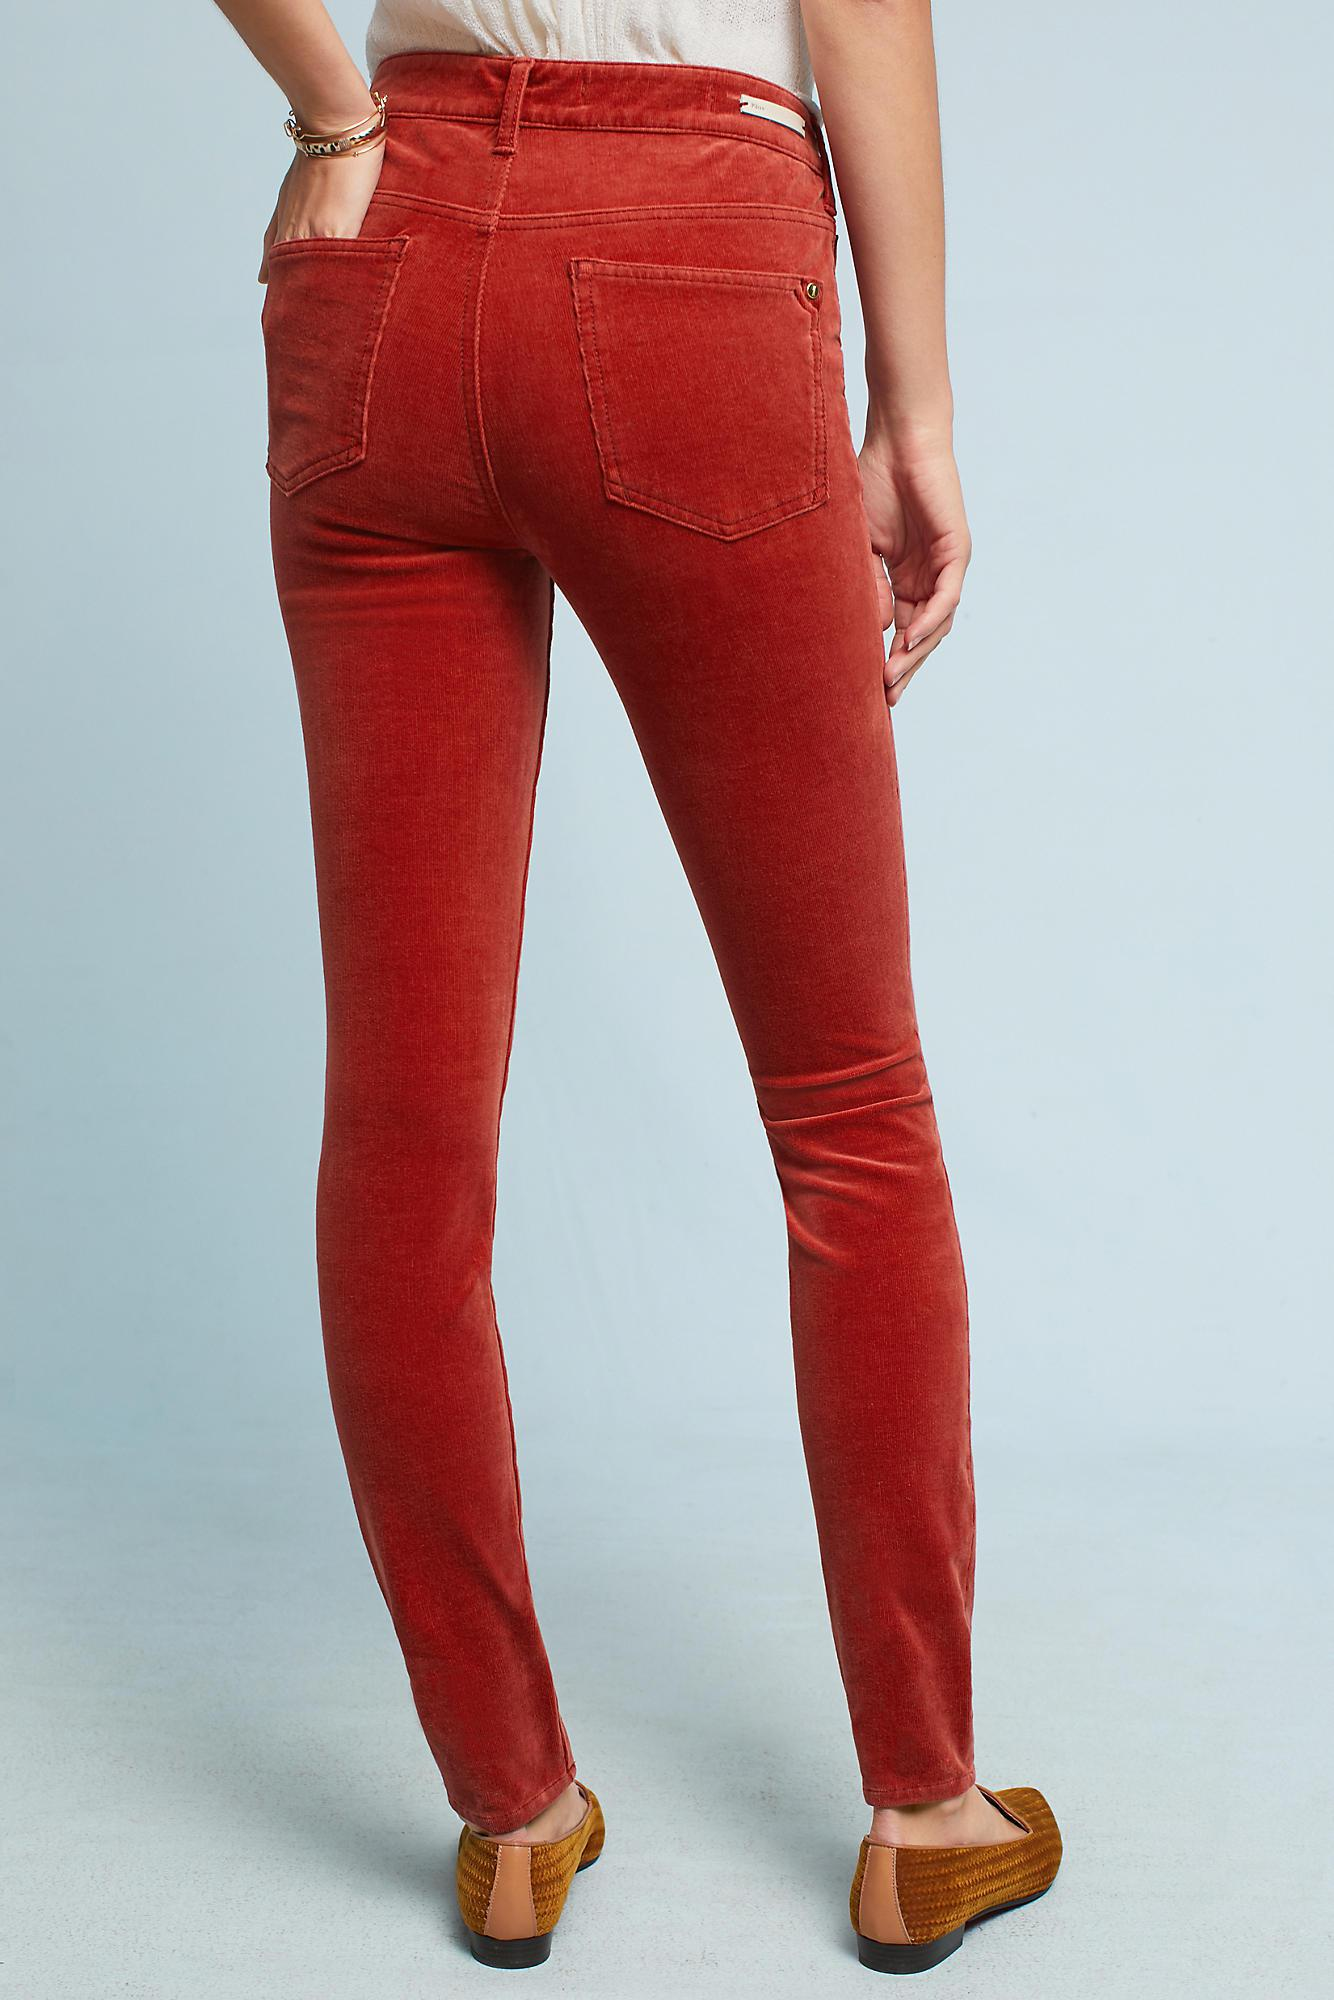 Anthropologie Pilcro Corduroy High-rise Skinny Jeans in Red